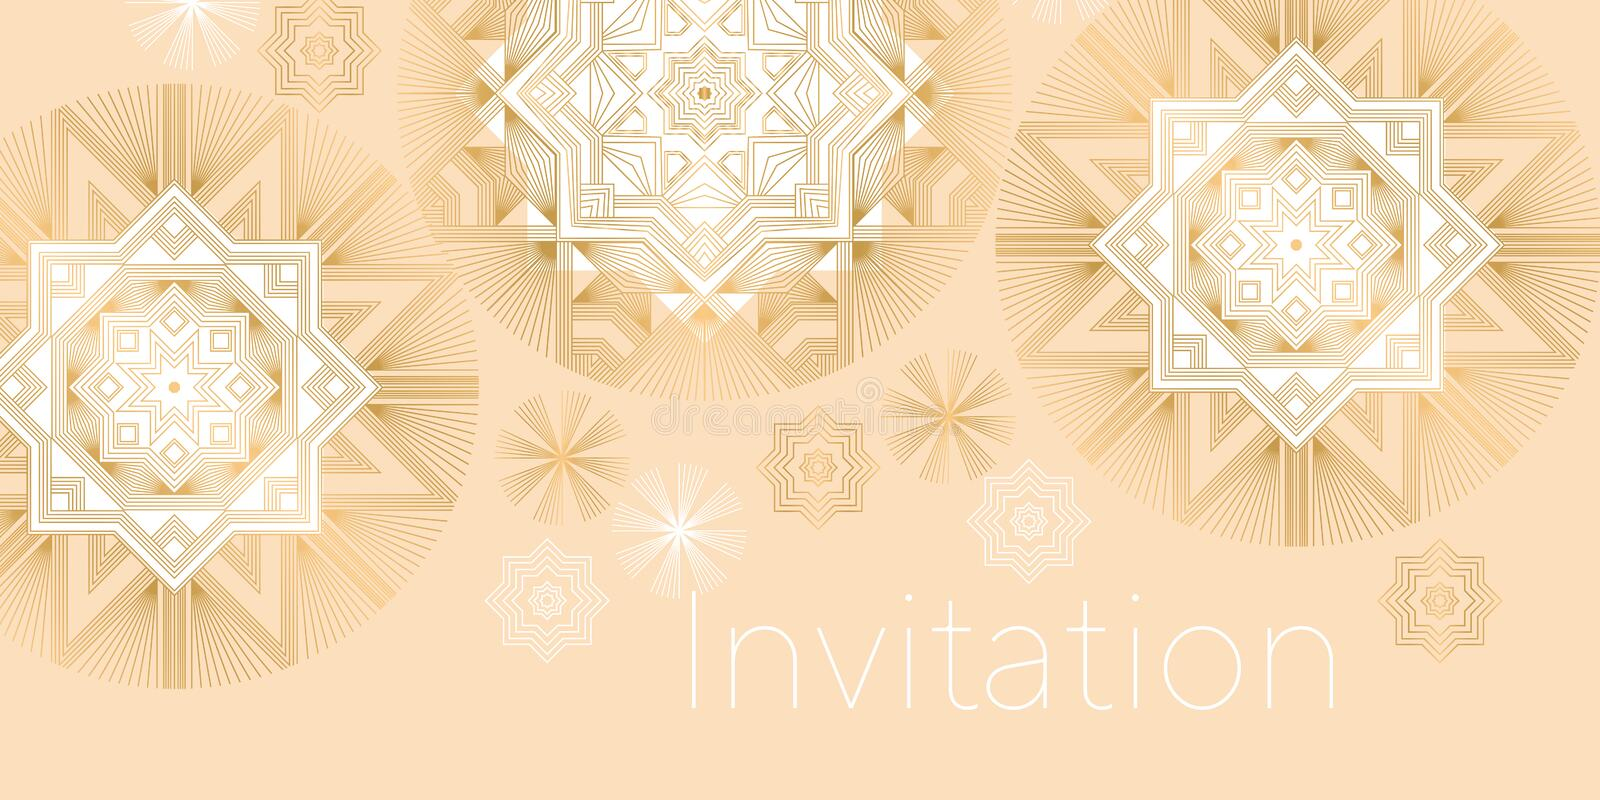 Xmas elegant geometric snowflakes. Christmas and new year beige luxury decorative pattern for header, card, invitation, poster, stock illustration